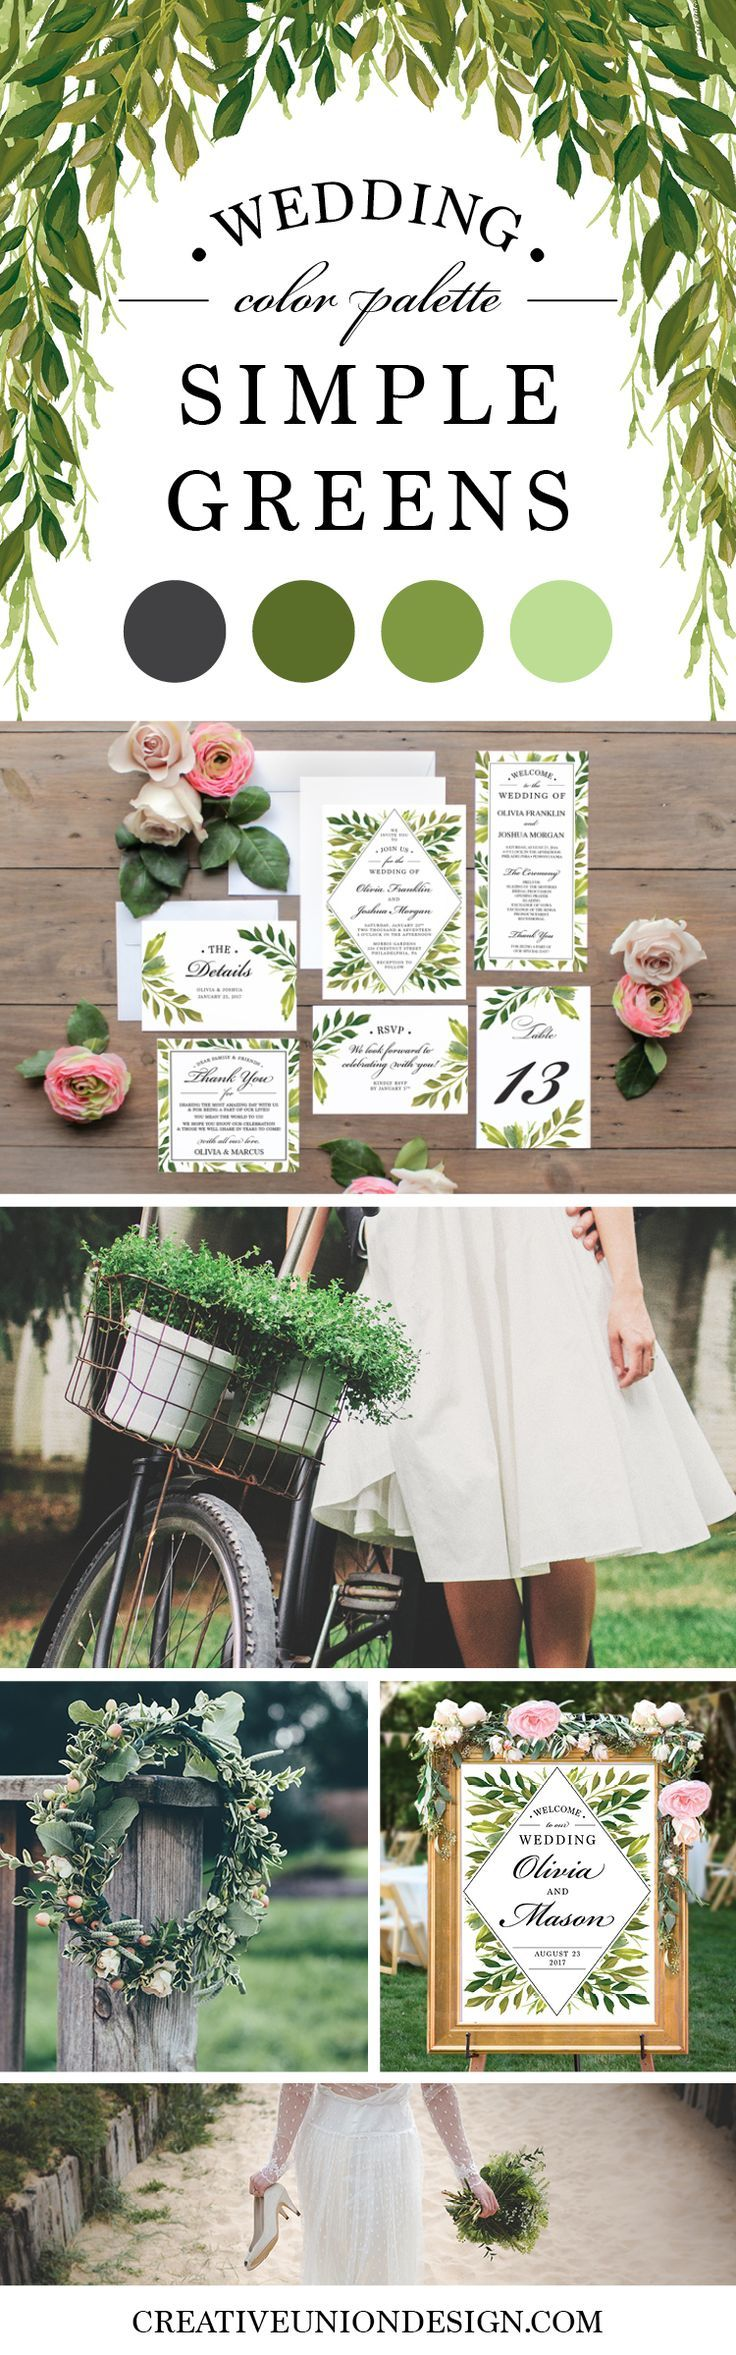 2017 Wedding Trends - Greenery! 2017 Wedding Color Palette. Popular Wedding Theme.